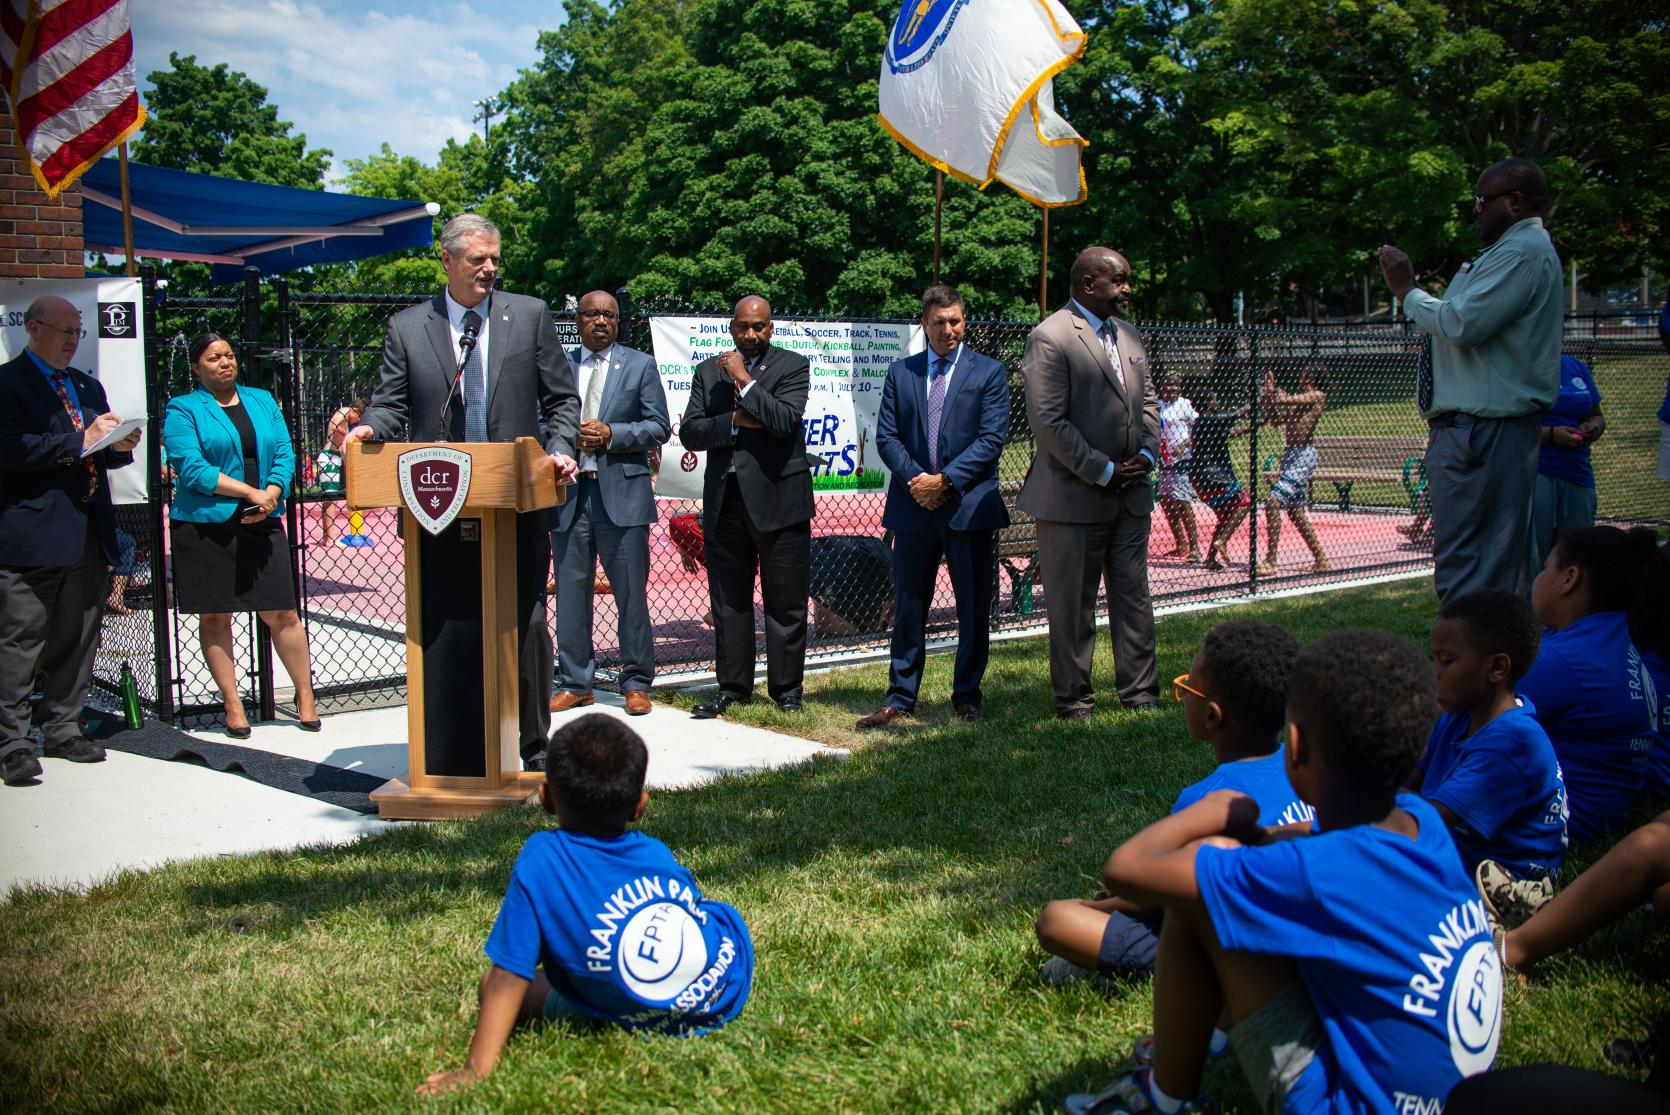 Governor Baker and others announce the 4th annual DCR Summer Nights Initiative.